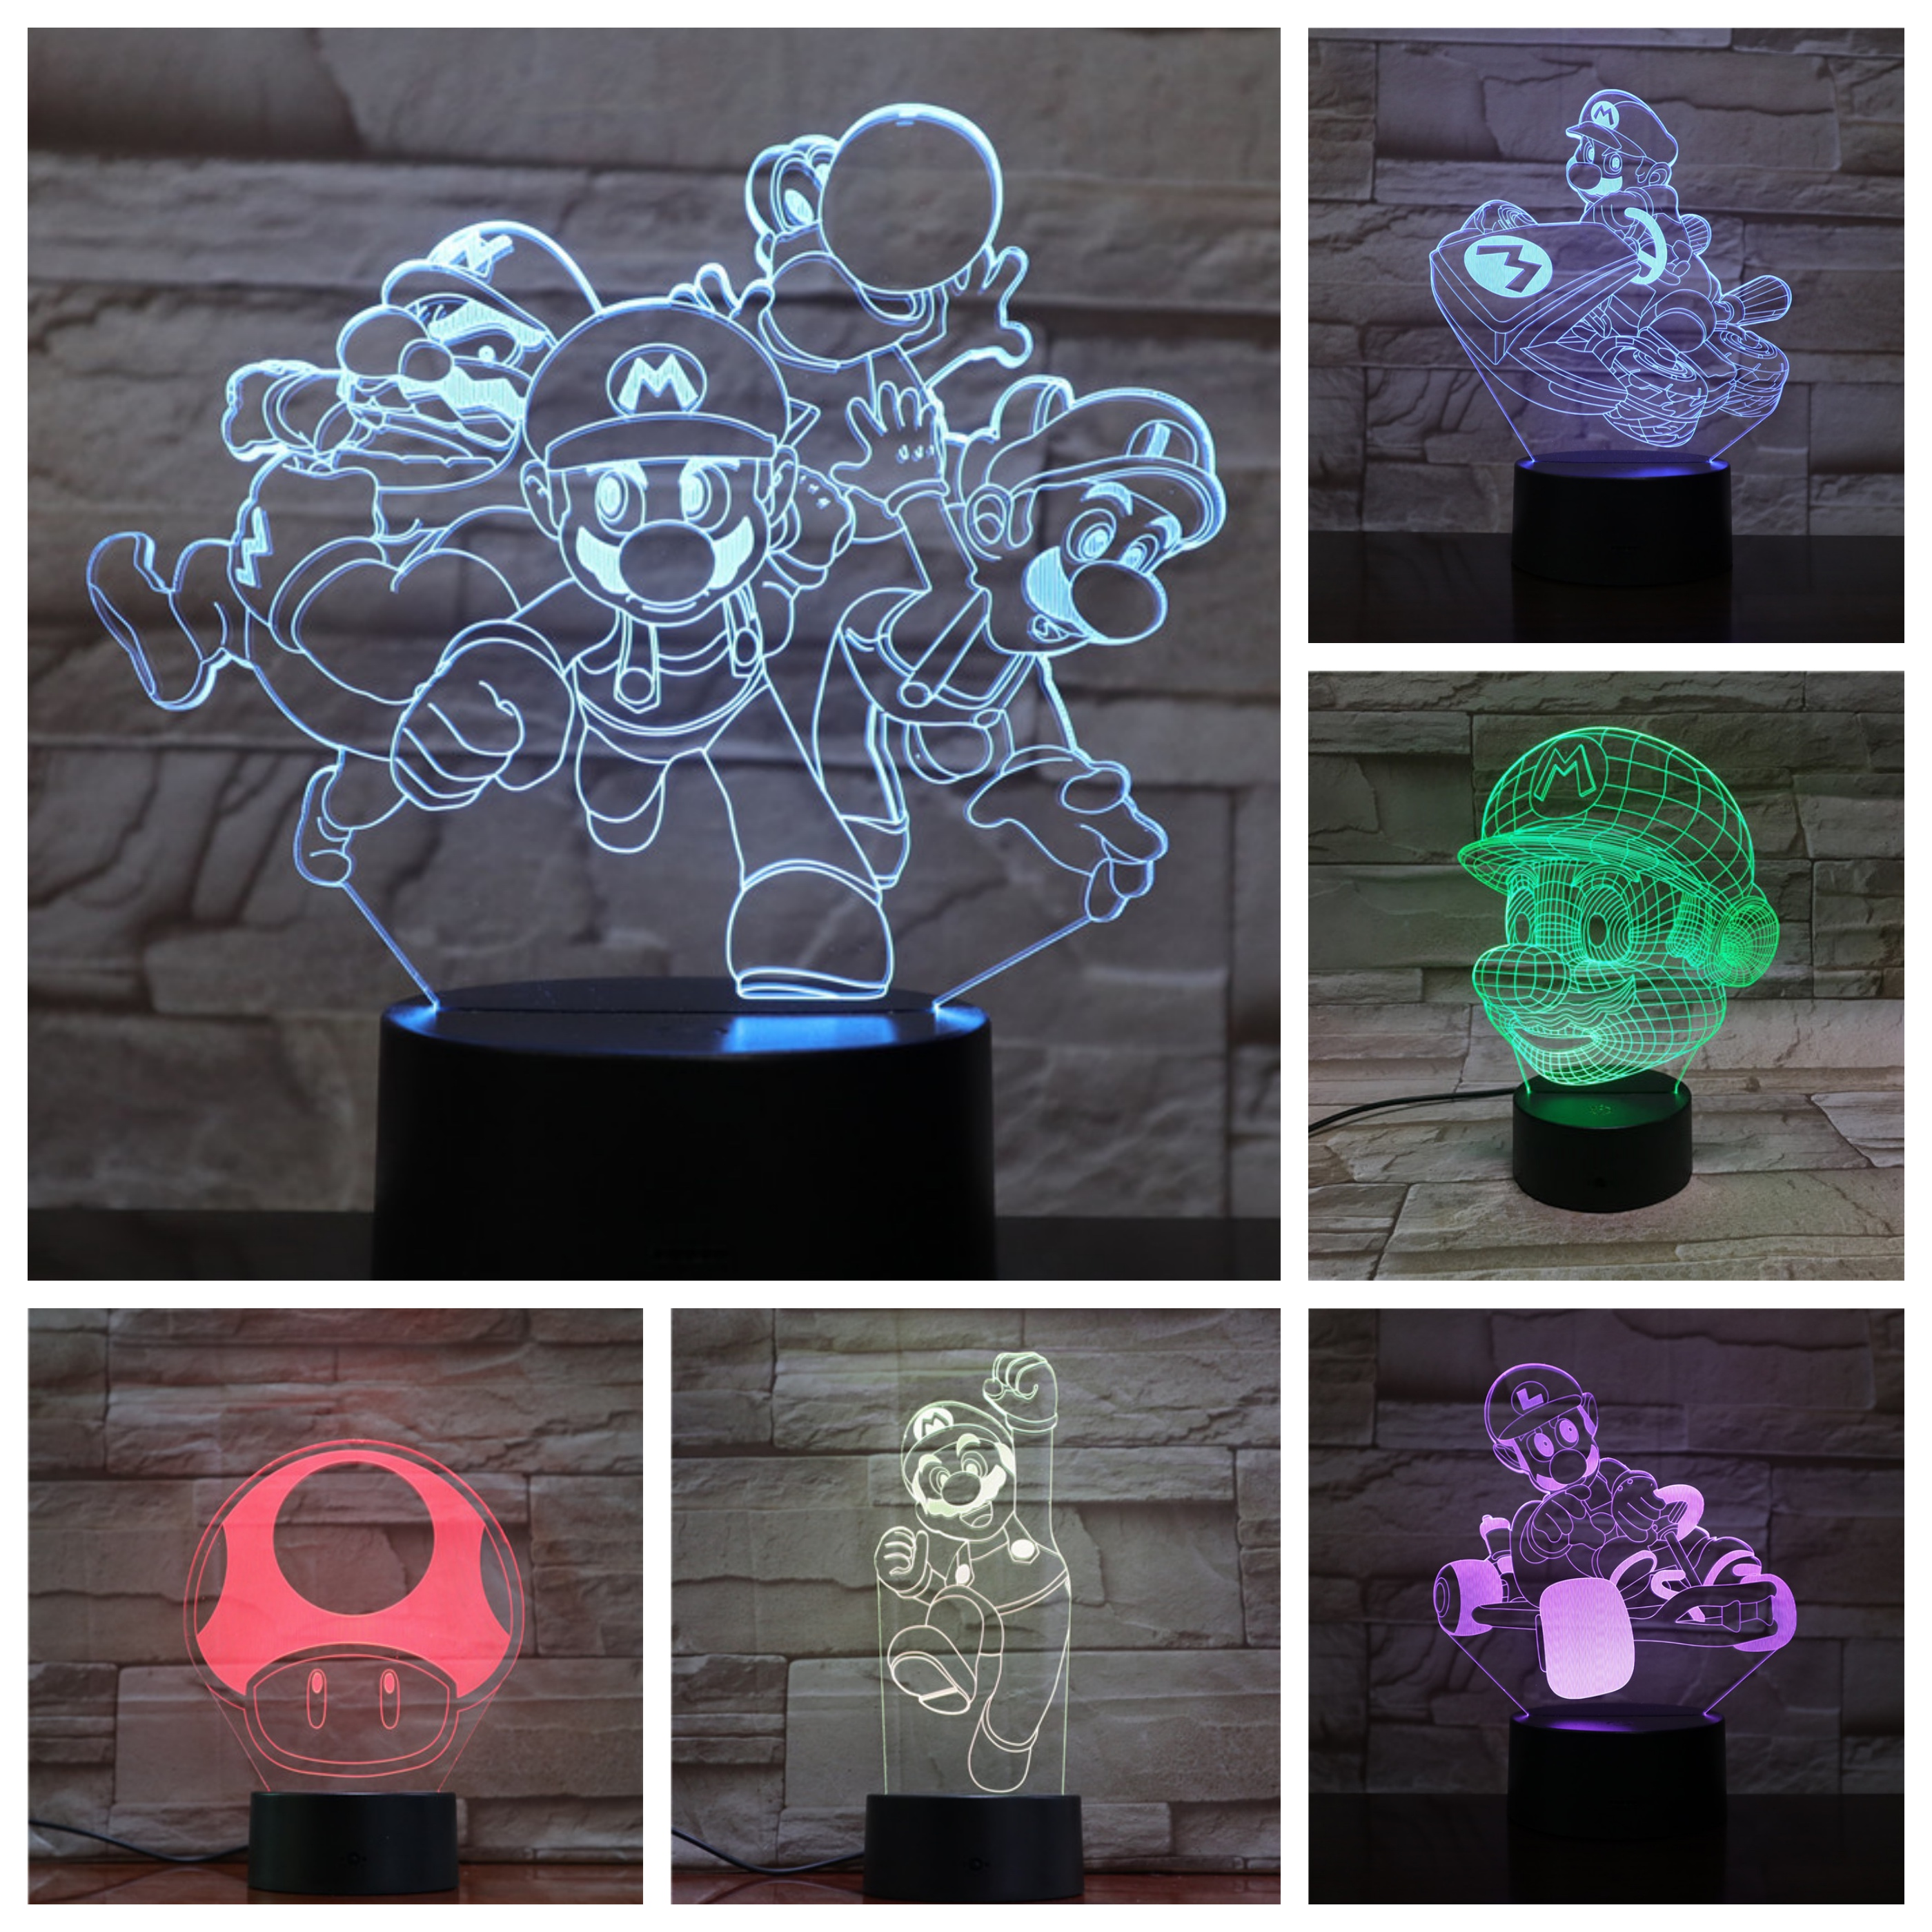 Game Super Mario Bros Action Figure Night Light LED 3D Bedroom Decorative Lamp Child Kids Baby Gift Nightlight Desk Lamp Decor